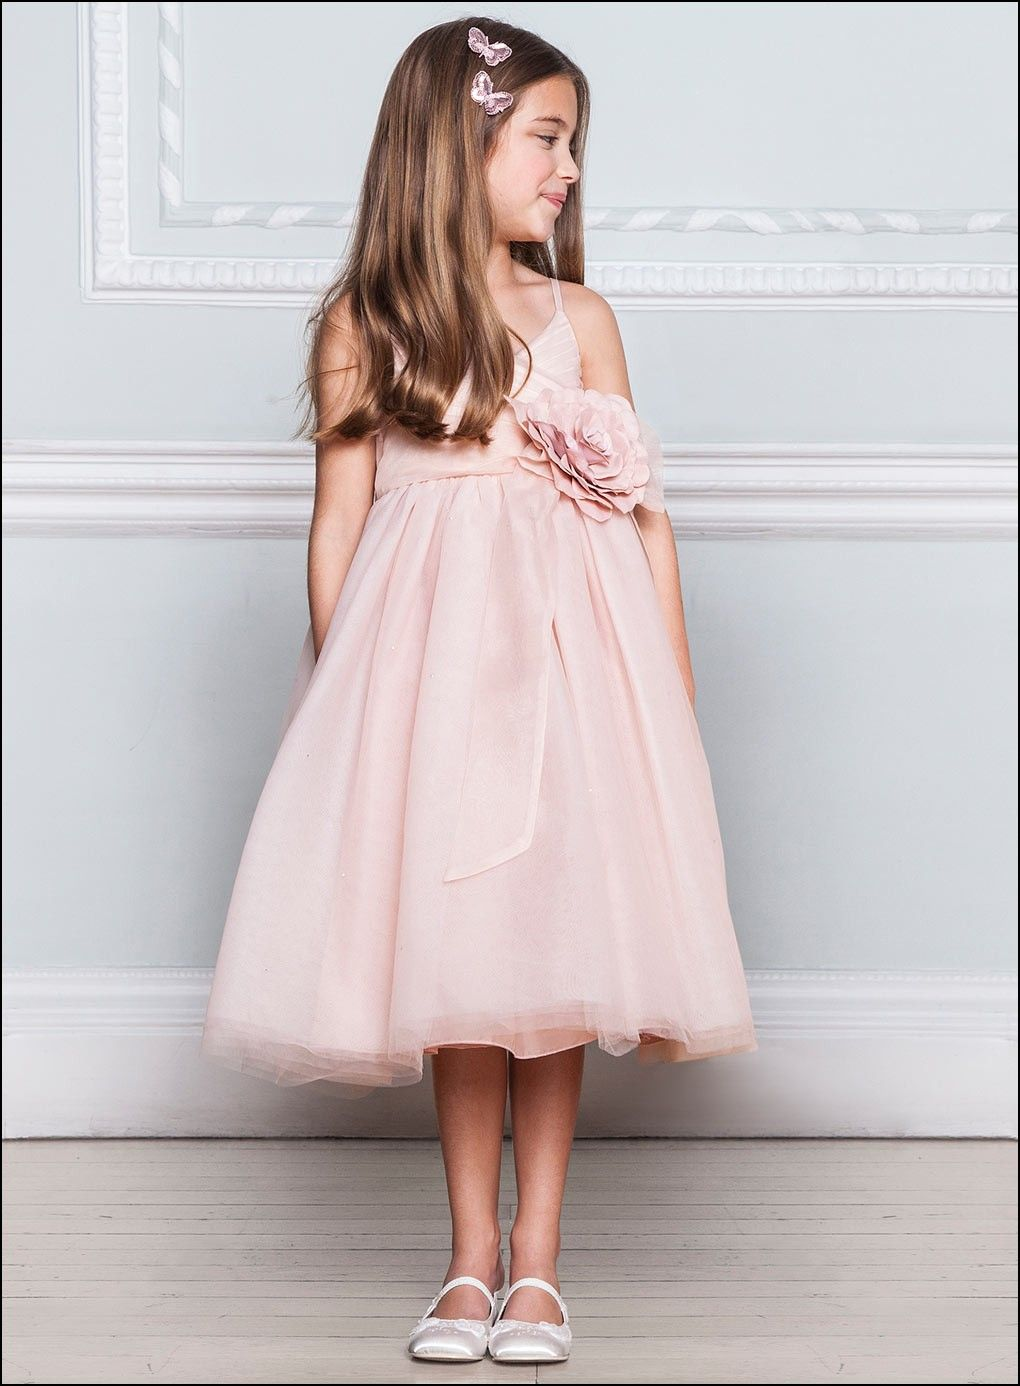 Childrens bridesmaids dresses dresses and gowns ideas pinterest childrens bridesmaids dresses ombrellifo Choice Image